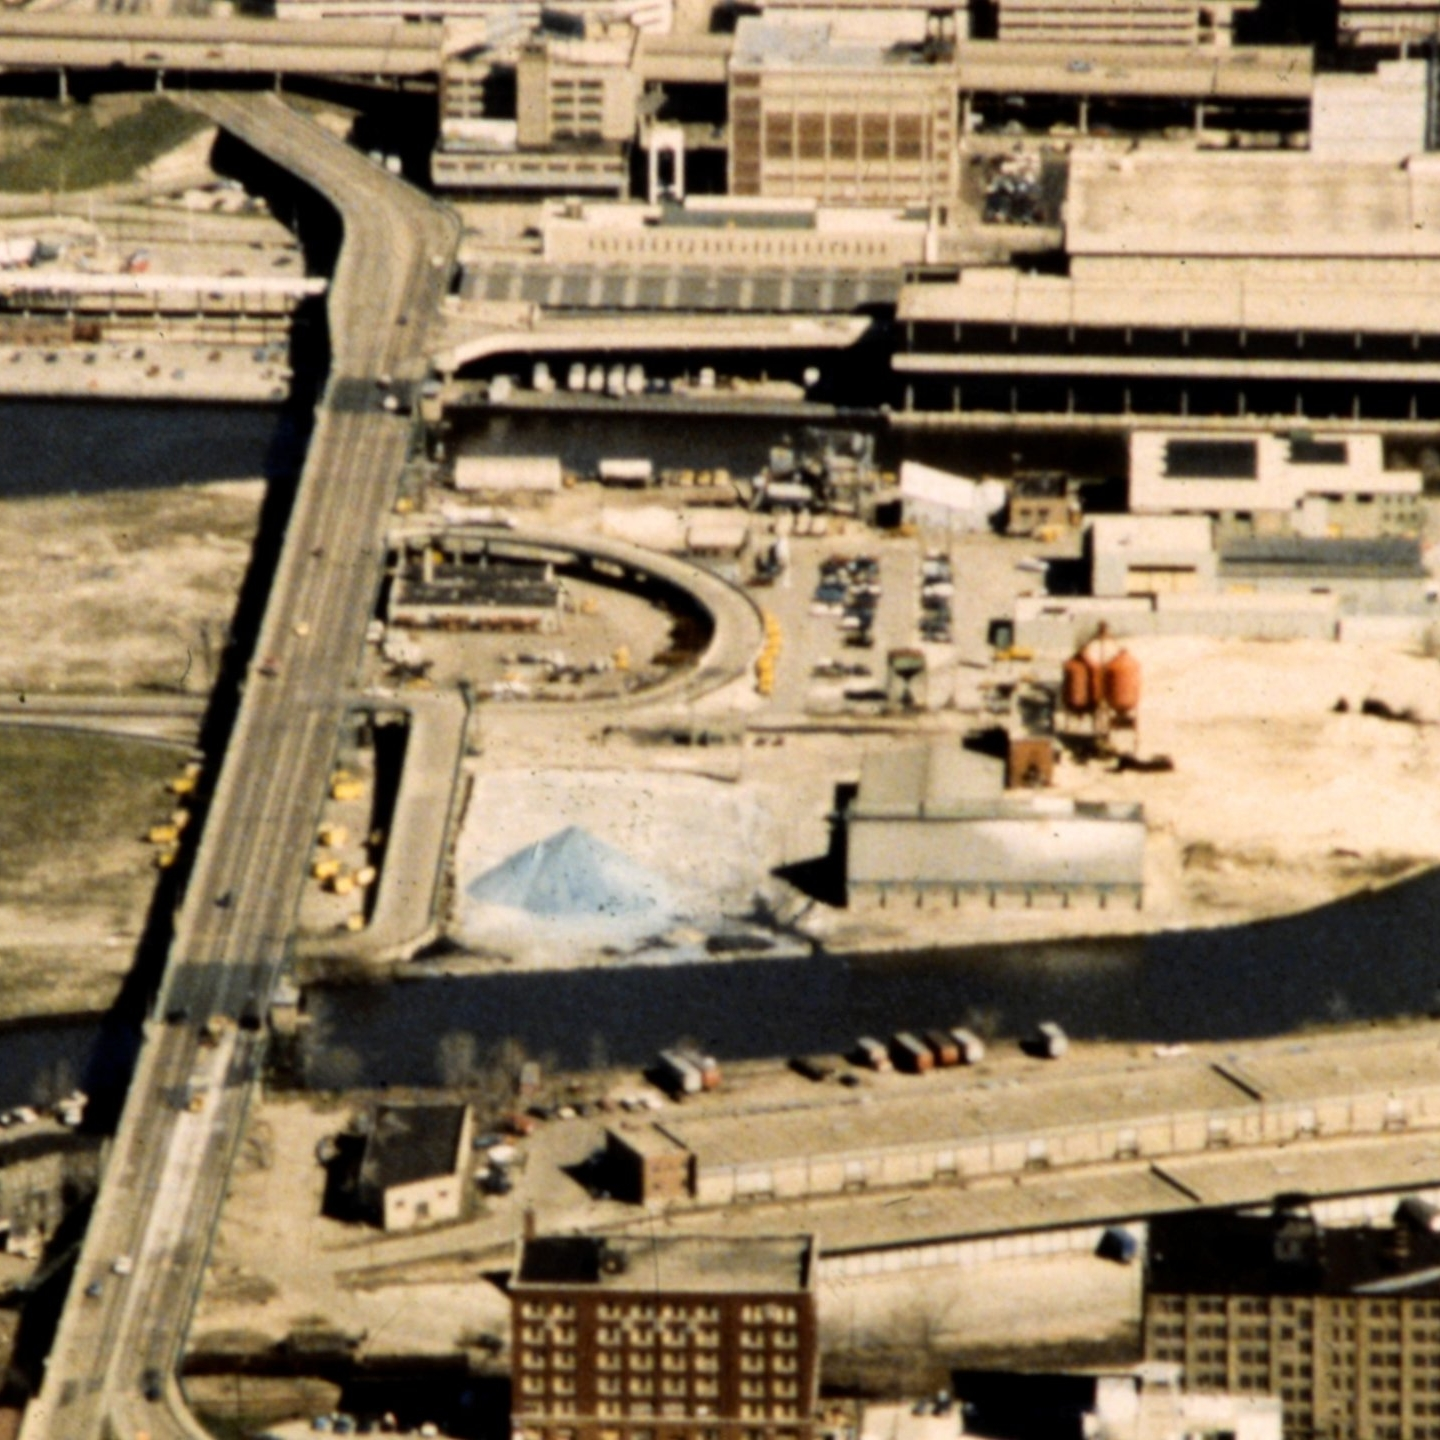 Valley Brownfields Walking Tour - Take a self-guided hike through Milwaukee's revitalized Menomonee River Valley